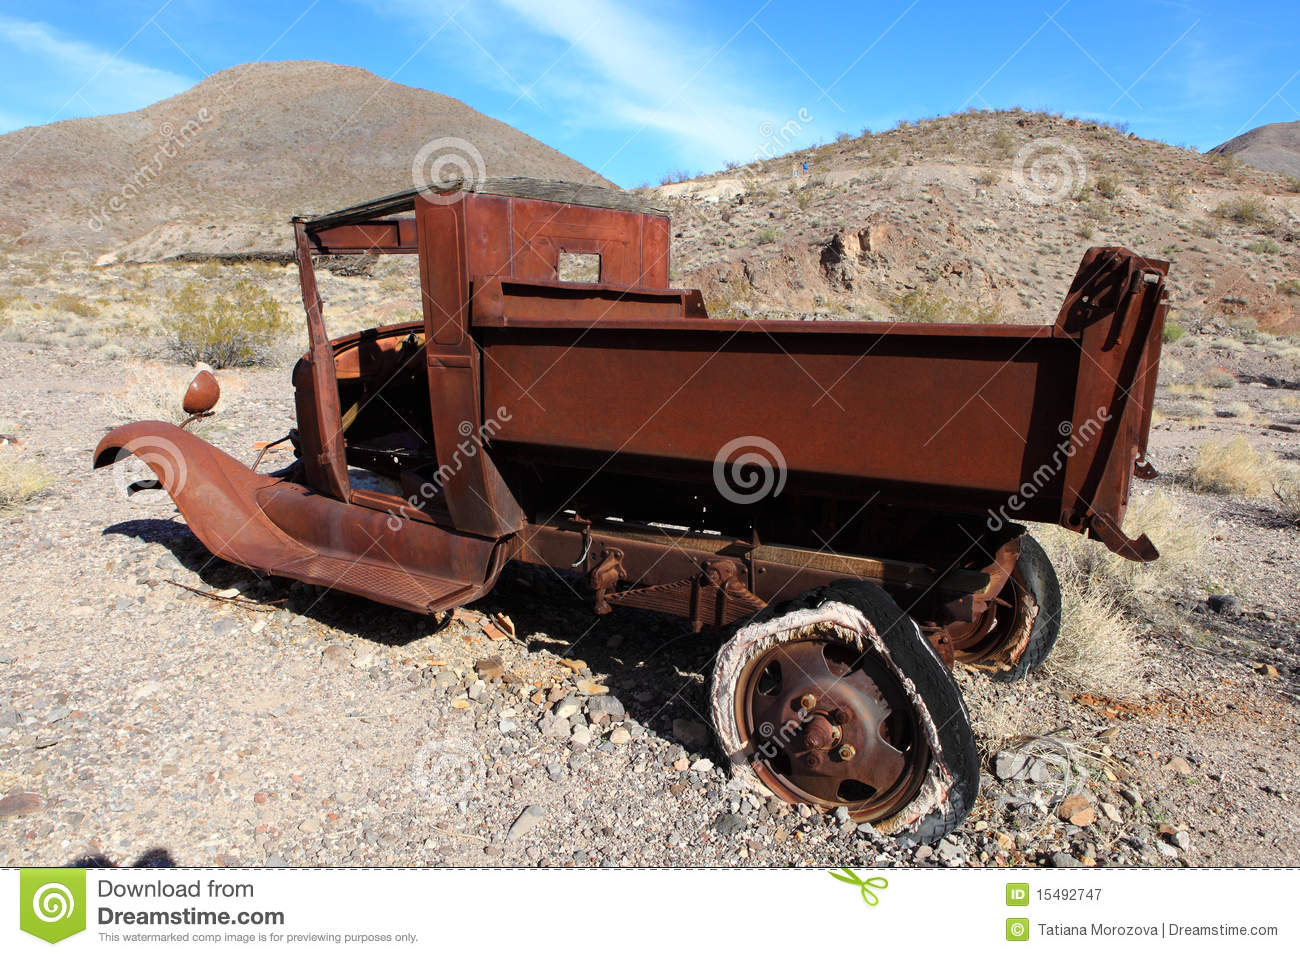 Old Rusted Car In Junk Yard Stock Image - Image of national, aged ...